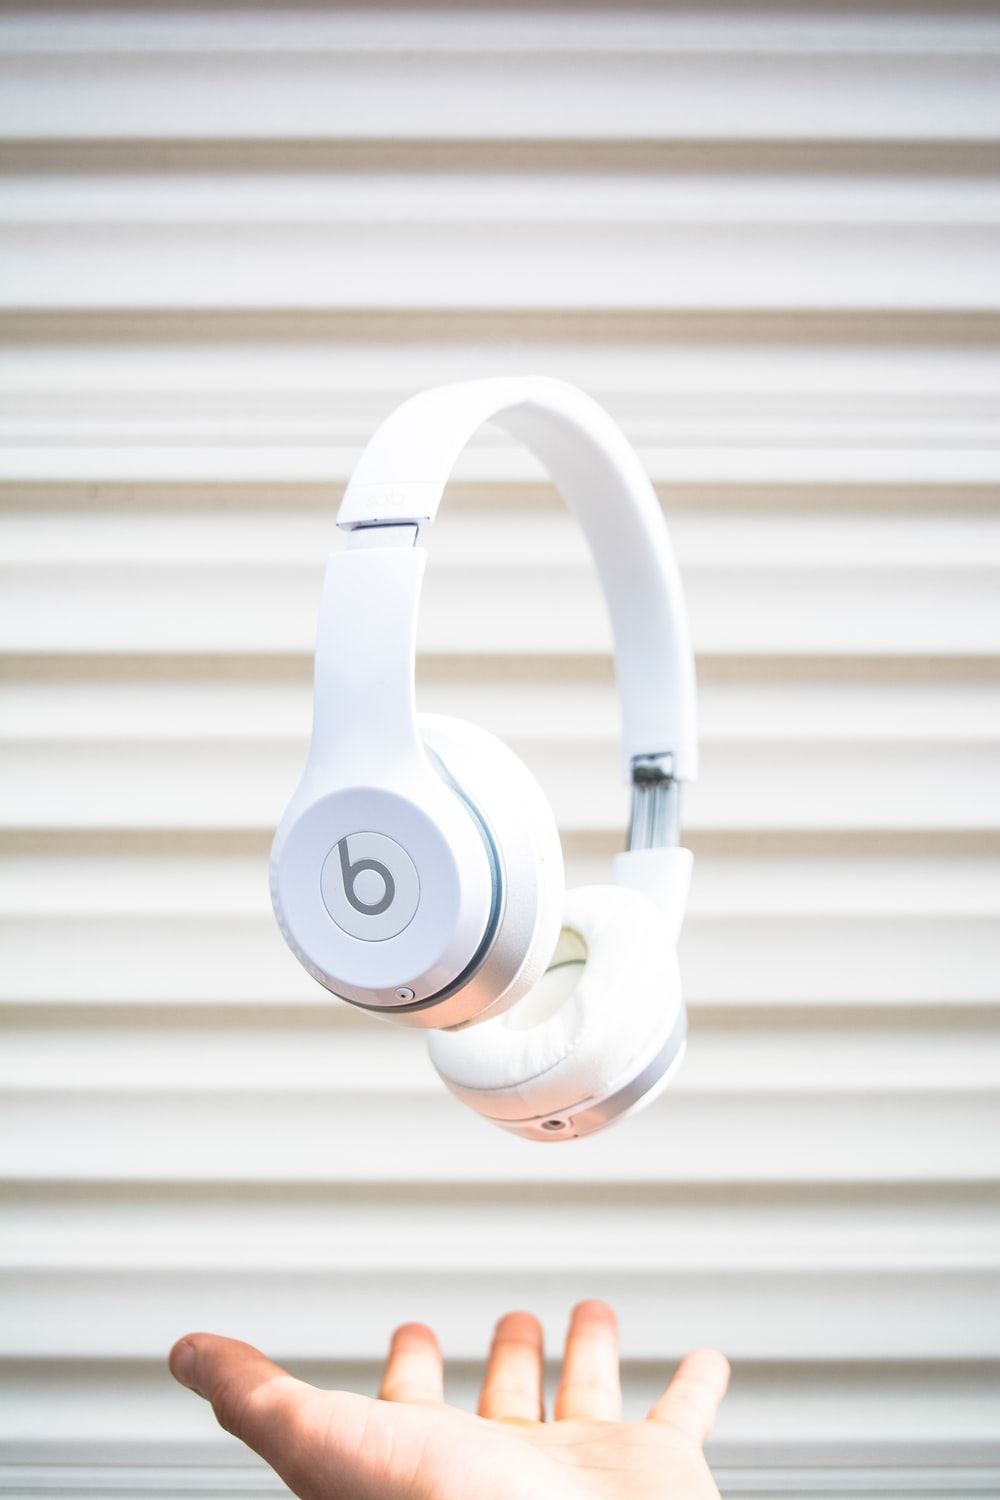 Beats Pictures | Download Free Images on Unsplash